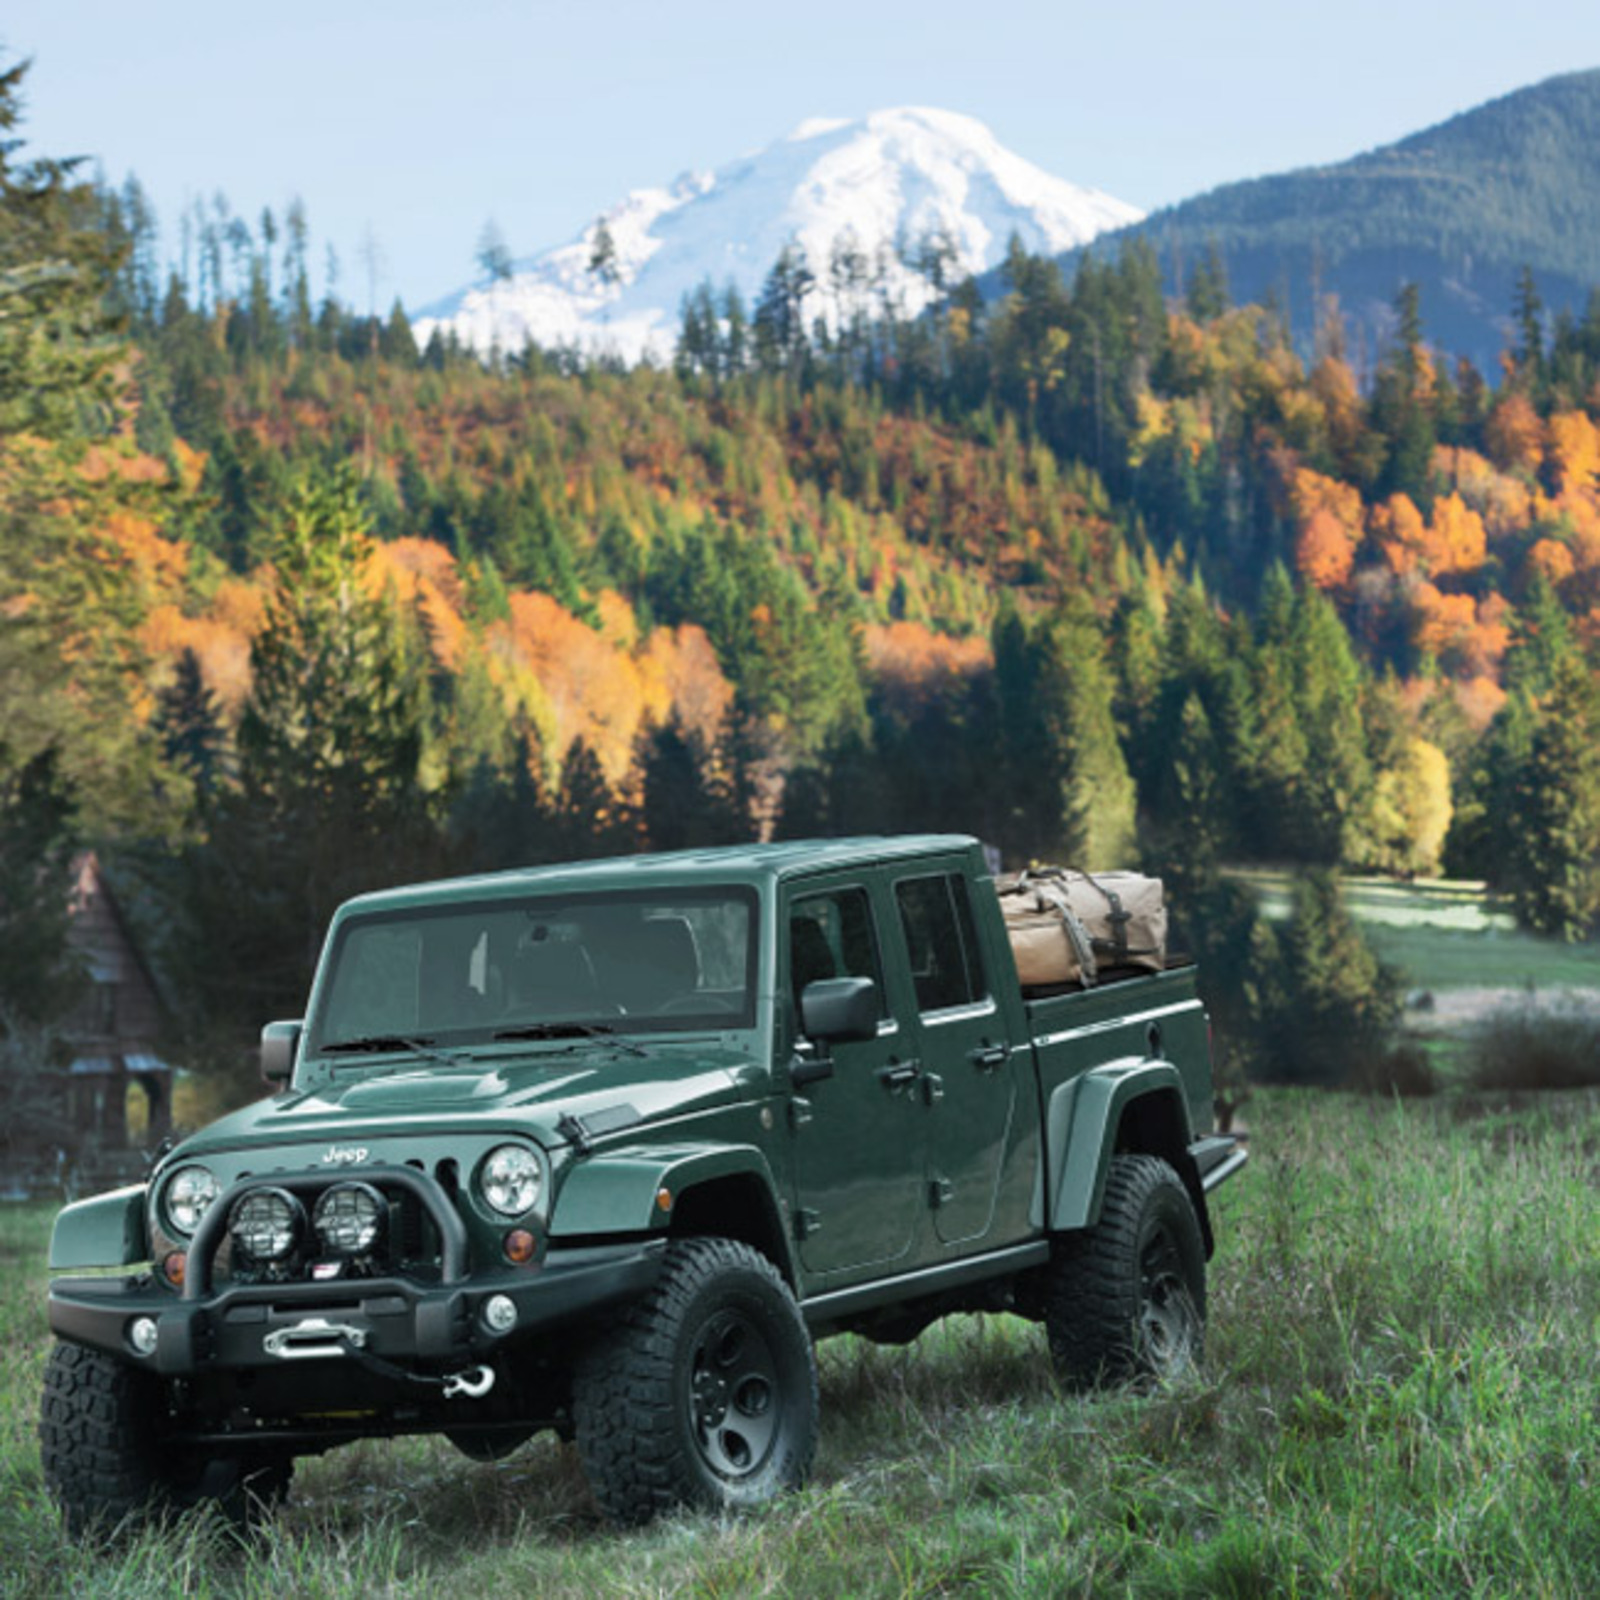 Filson Aev Cool Hunting